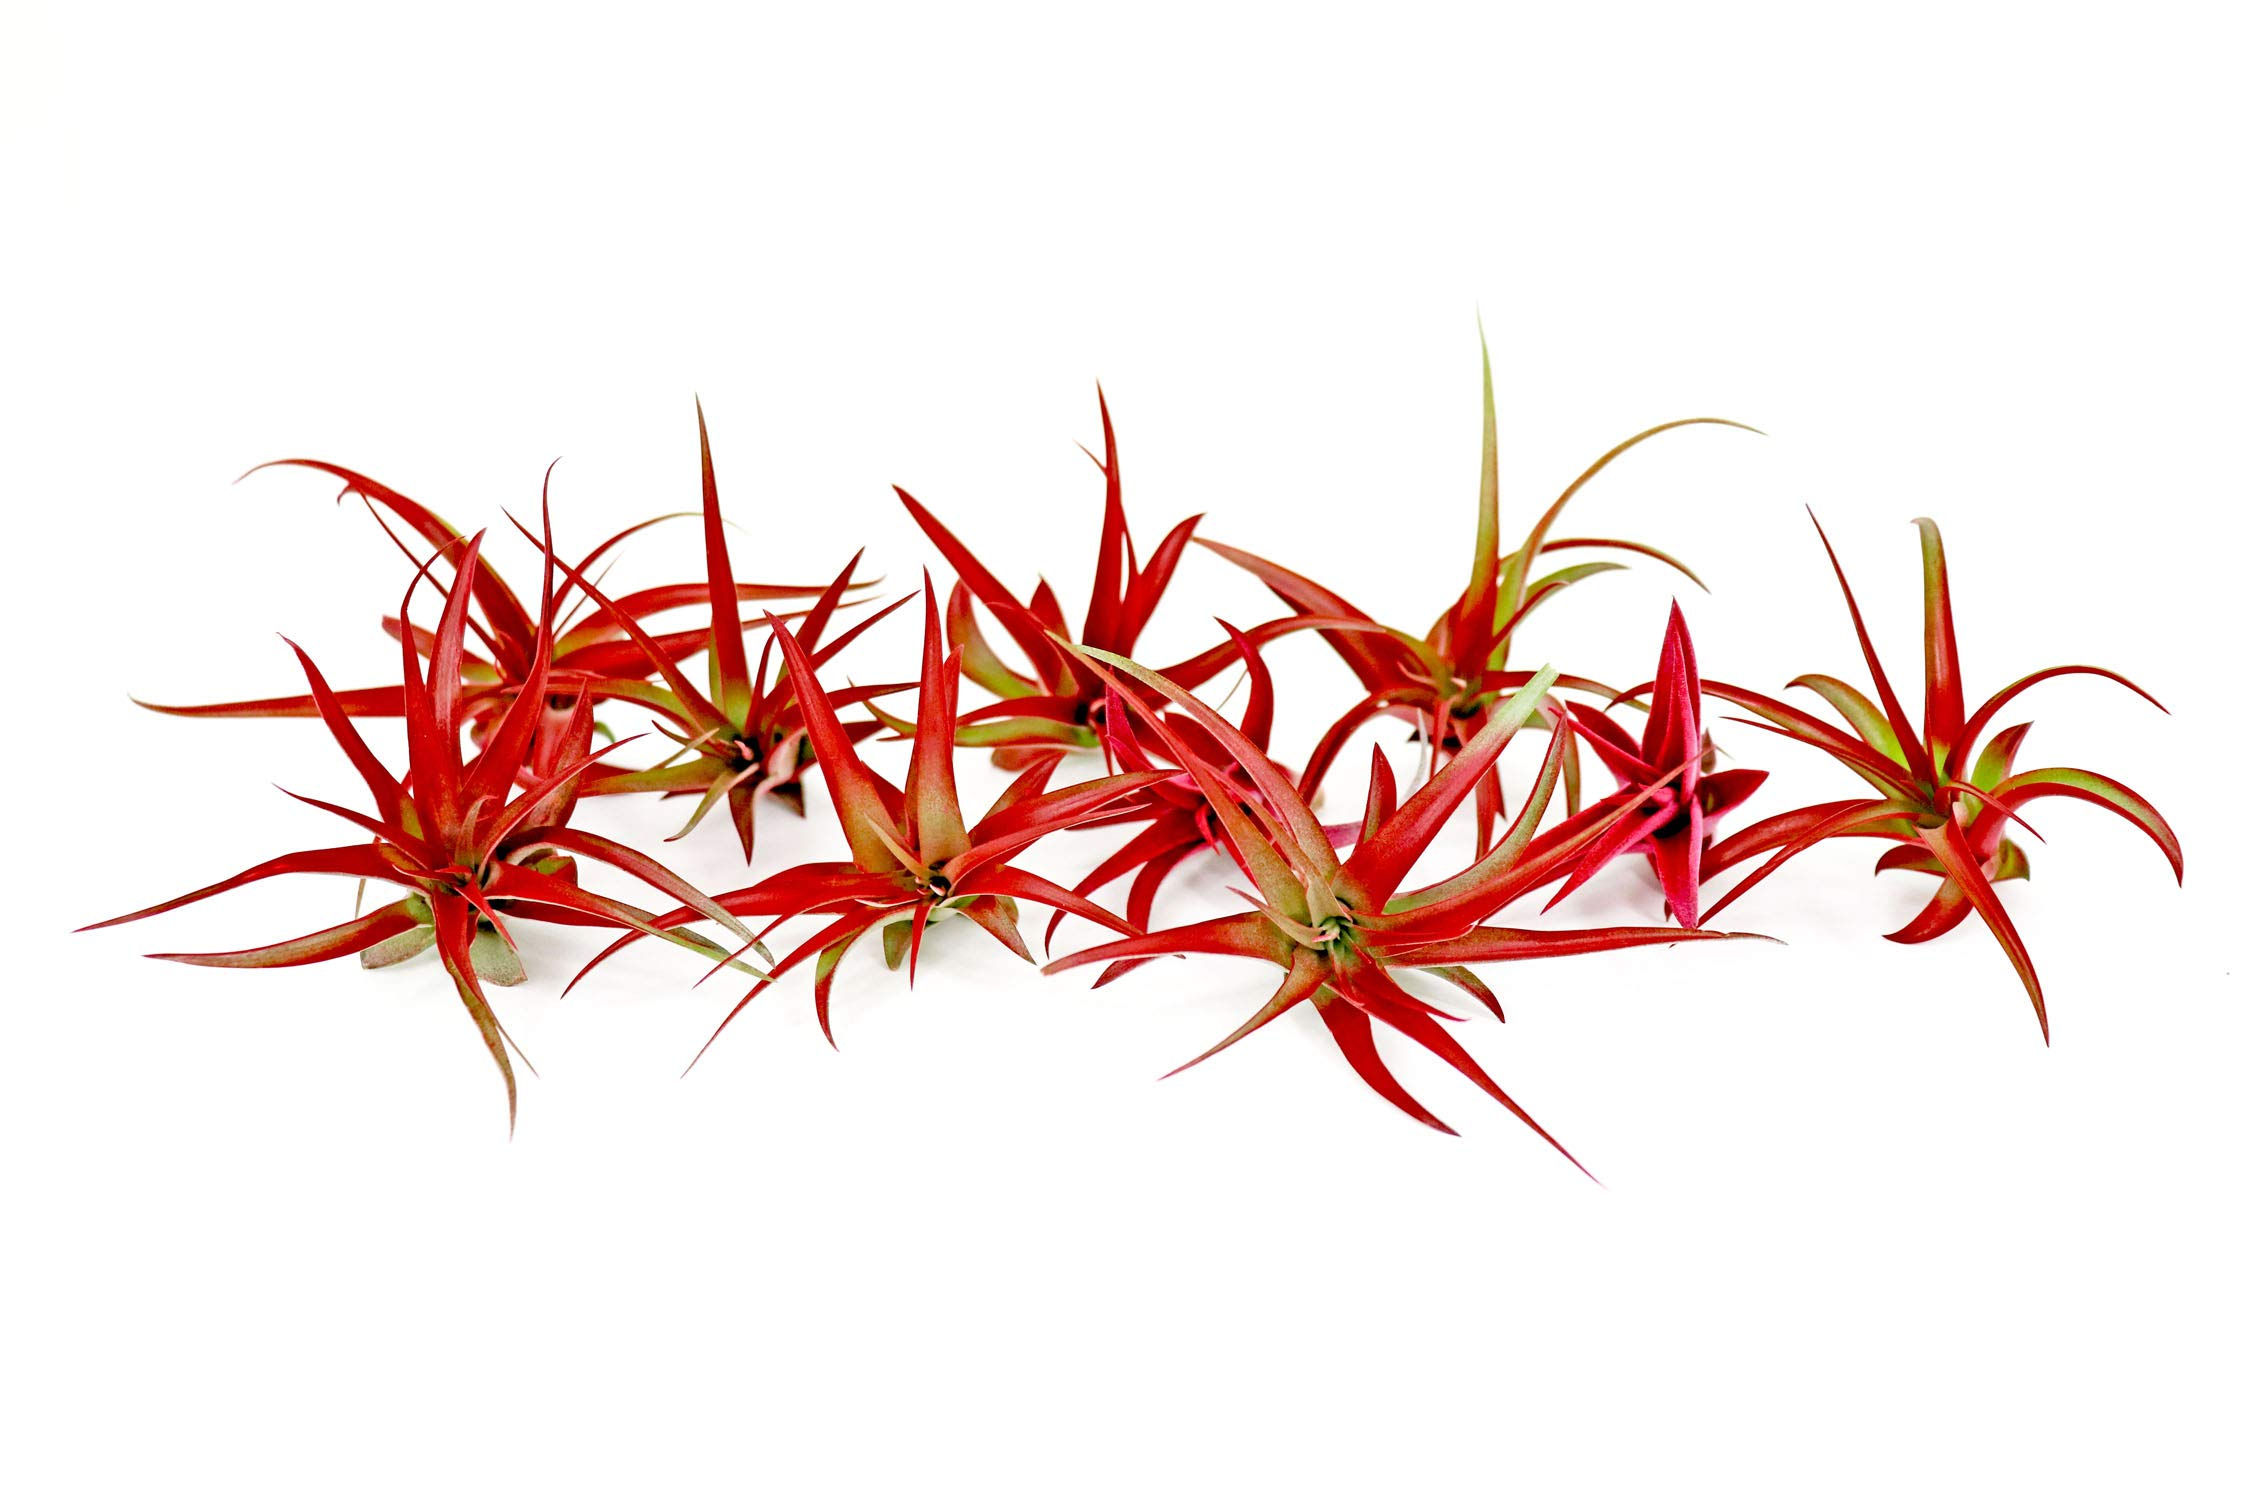 10 Live Air Plants | Bright Red Tillandsia Air Plant Pack | Colorful Indoor Plants | Real Houseplants | Easy Terrarium Decor Kit by Plants for Pets by Plants for Pets (Image #3)